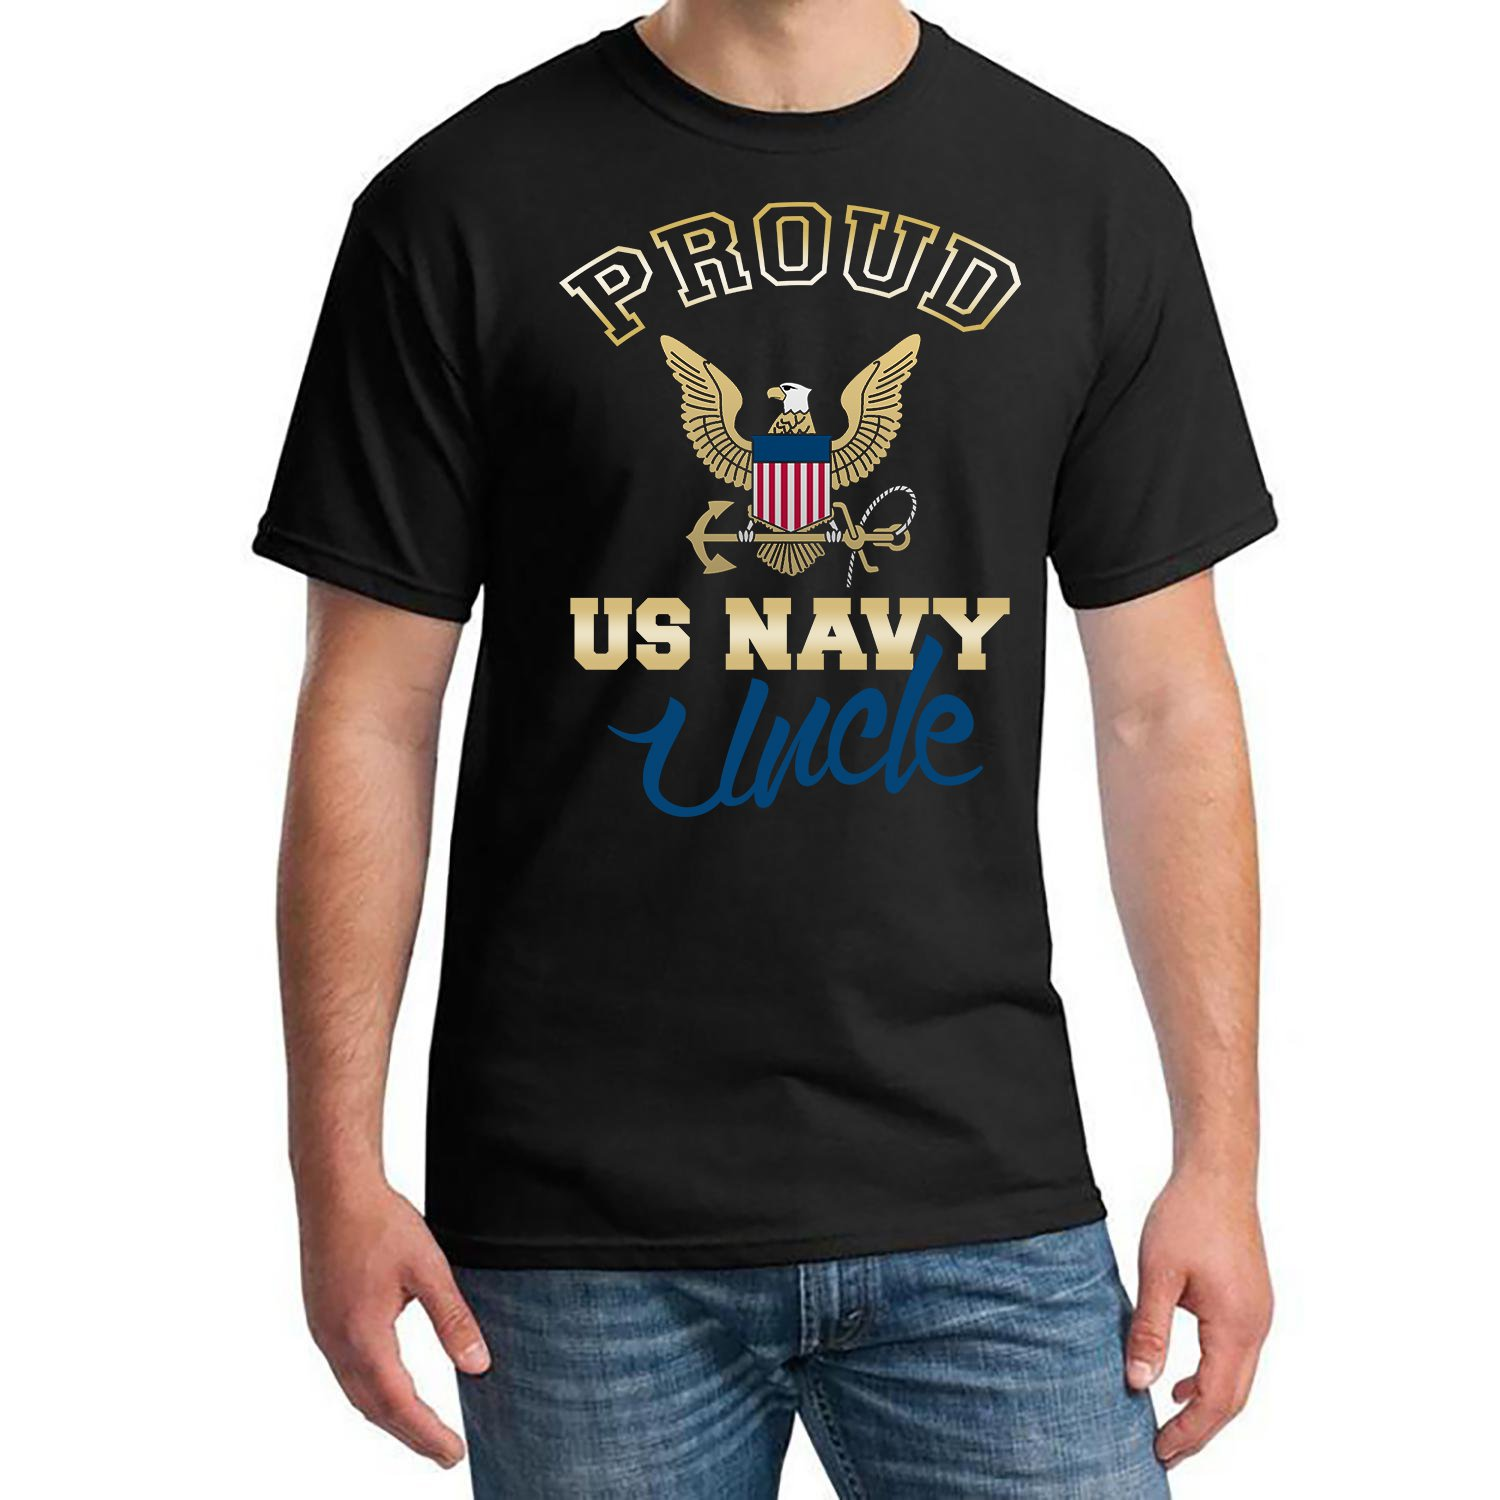 US Navy Uncle, Proud Us Navy UncleShirt